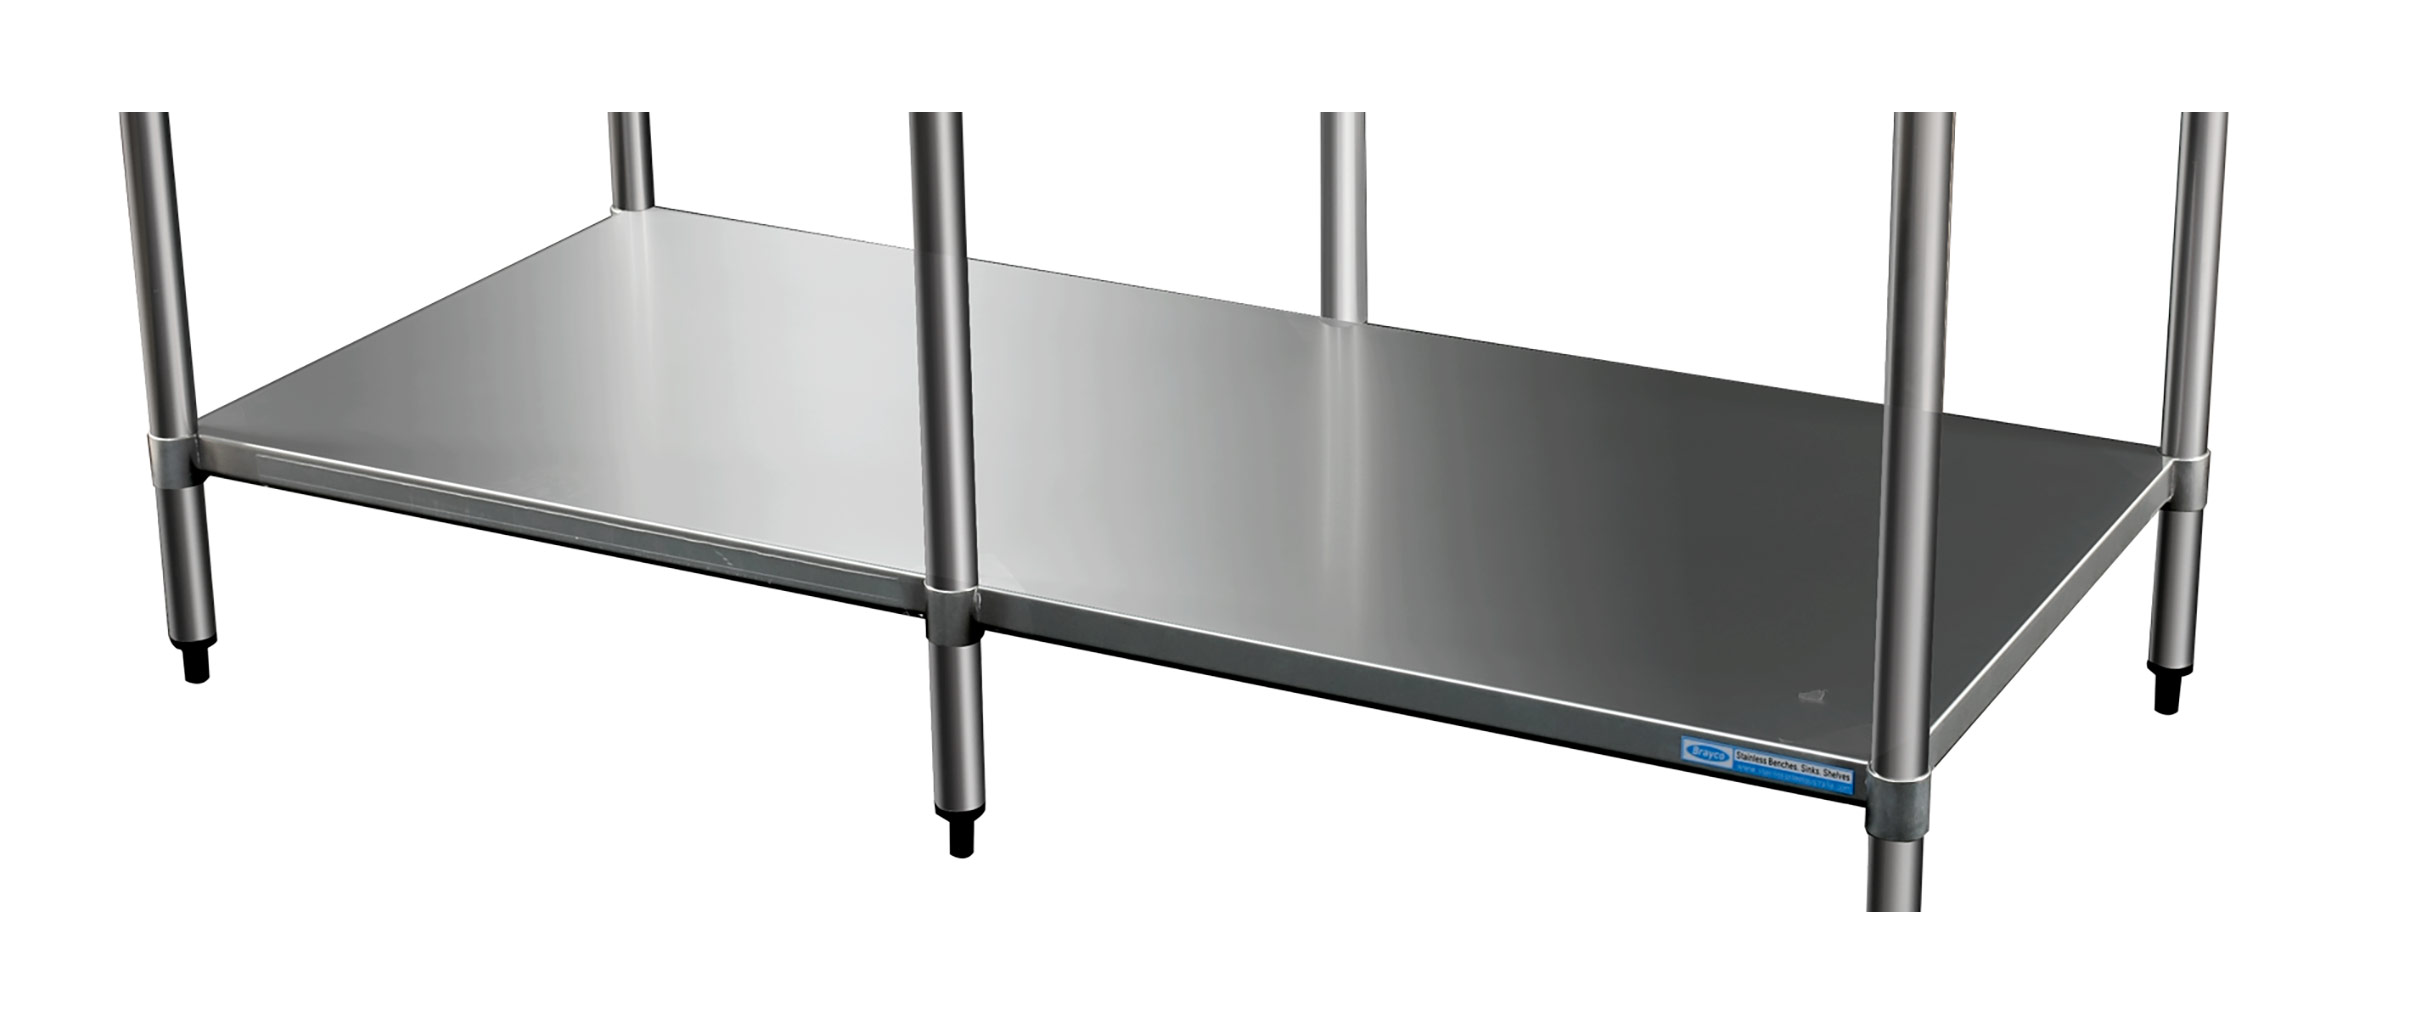 Stainless Undershelf for 3672 Bench-0